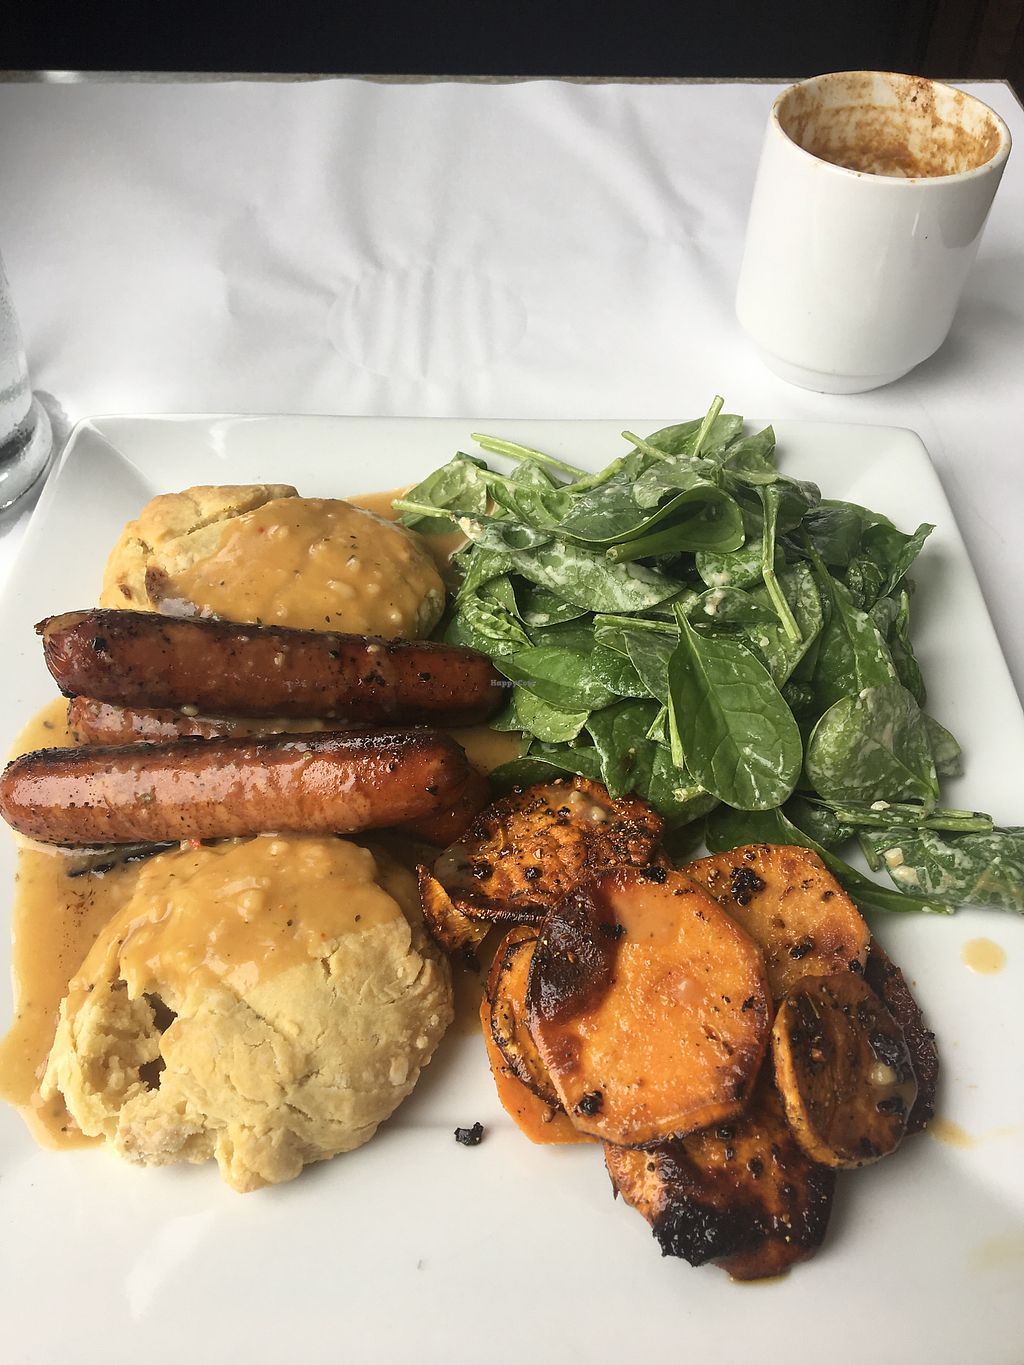 """Photo of Vegano  by <a href=""""/members/profile/Kristyv"""">Kristyv</a> <br/>Biscuits and gravy ?? <br/> October 15, 2017  - <a href='/contact/abuse/image/84140/315551'>Report</a>"""